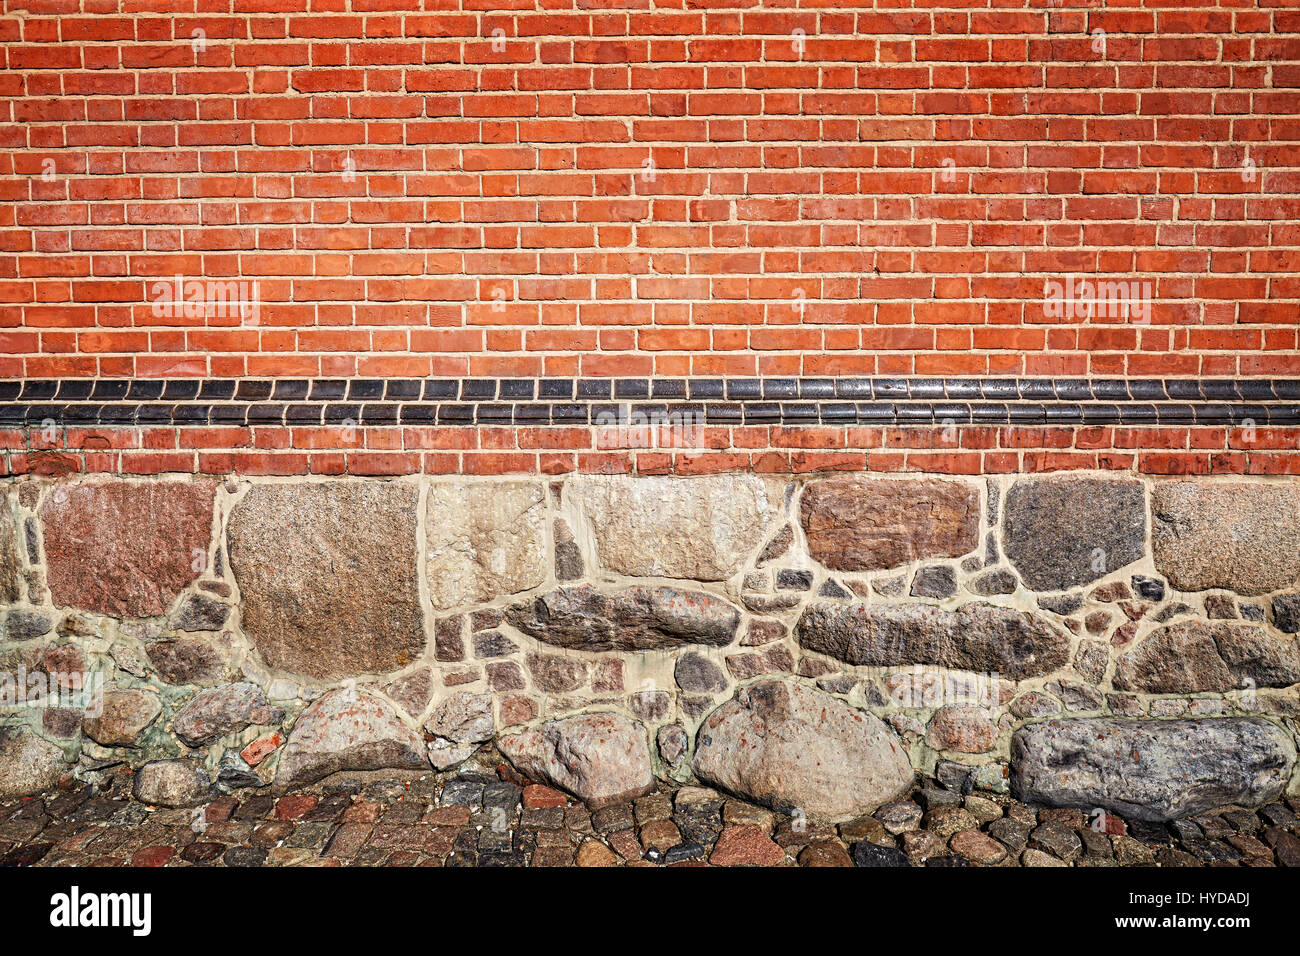 Picture of stone and brick wall, texture or background. - Stock Image